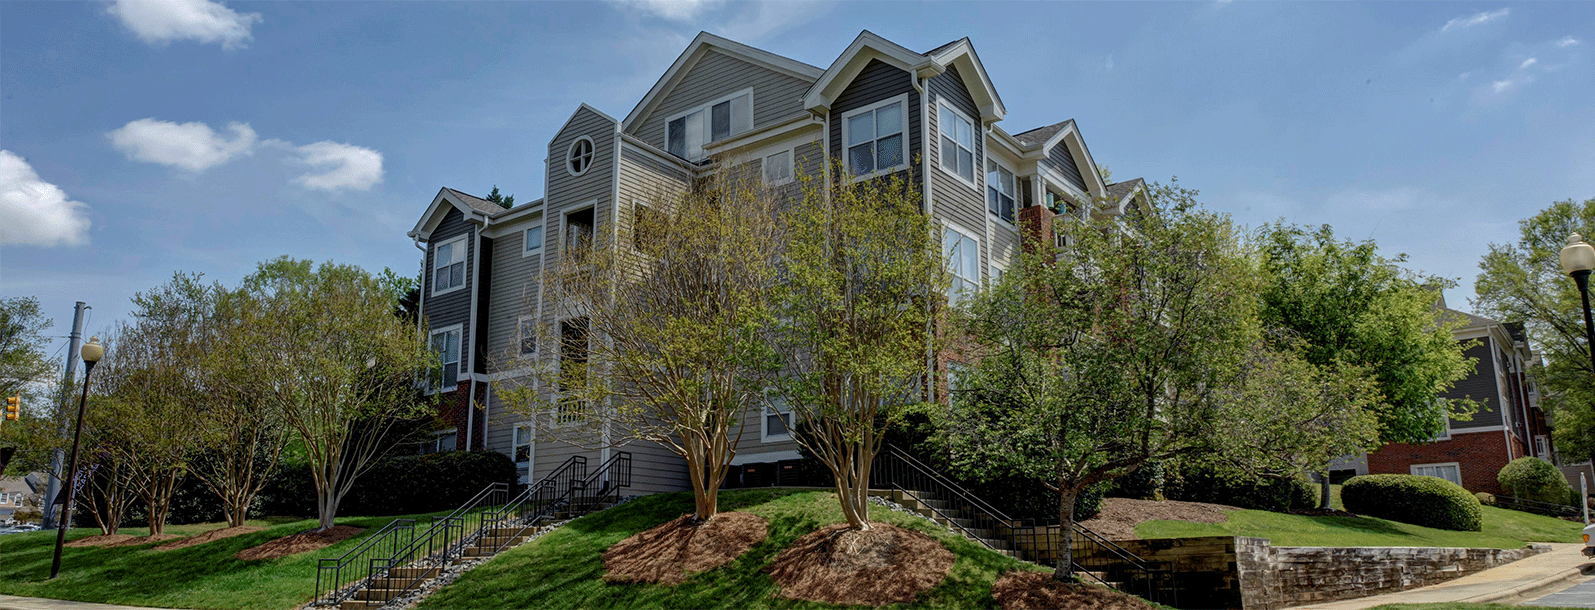 Beautiful Landscaping and Park-like Setting at Cambridge Apartments, Raleigh